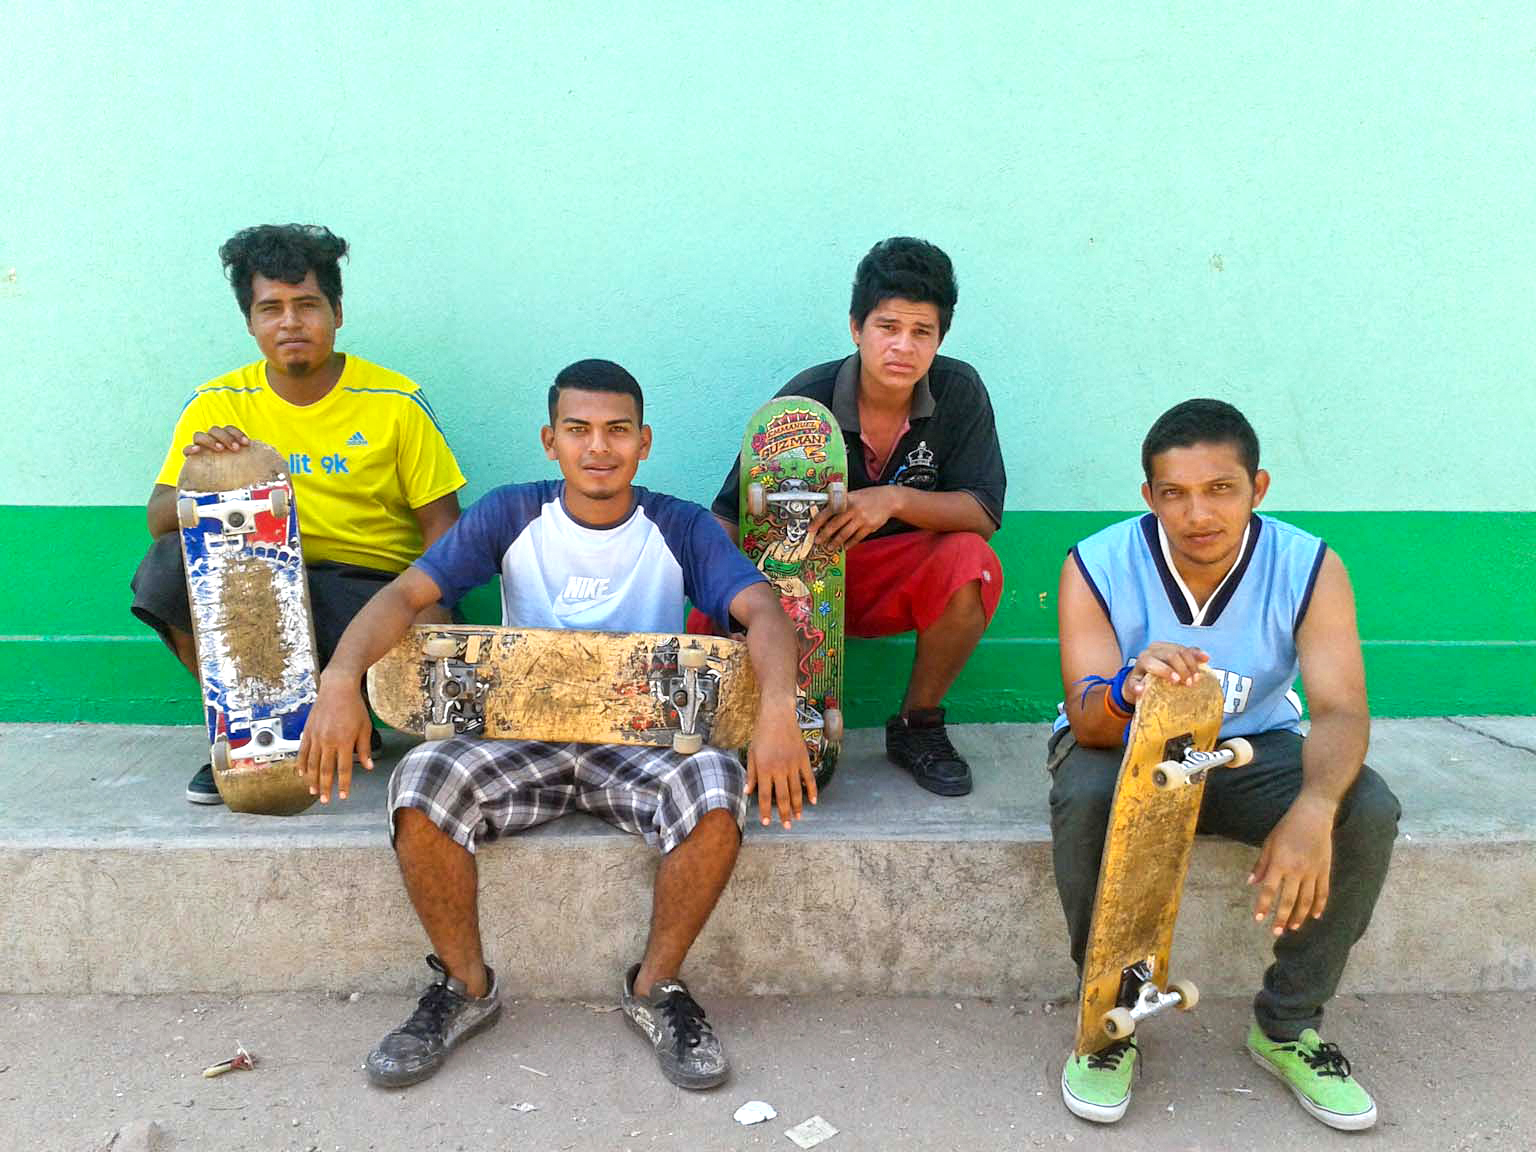 How Four Dudes Skated from El Salvador to the U.S. to Flee Gang Violence